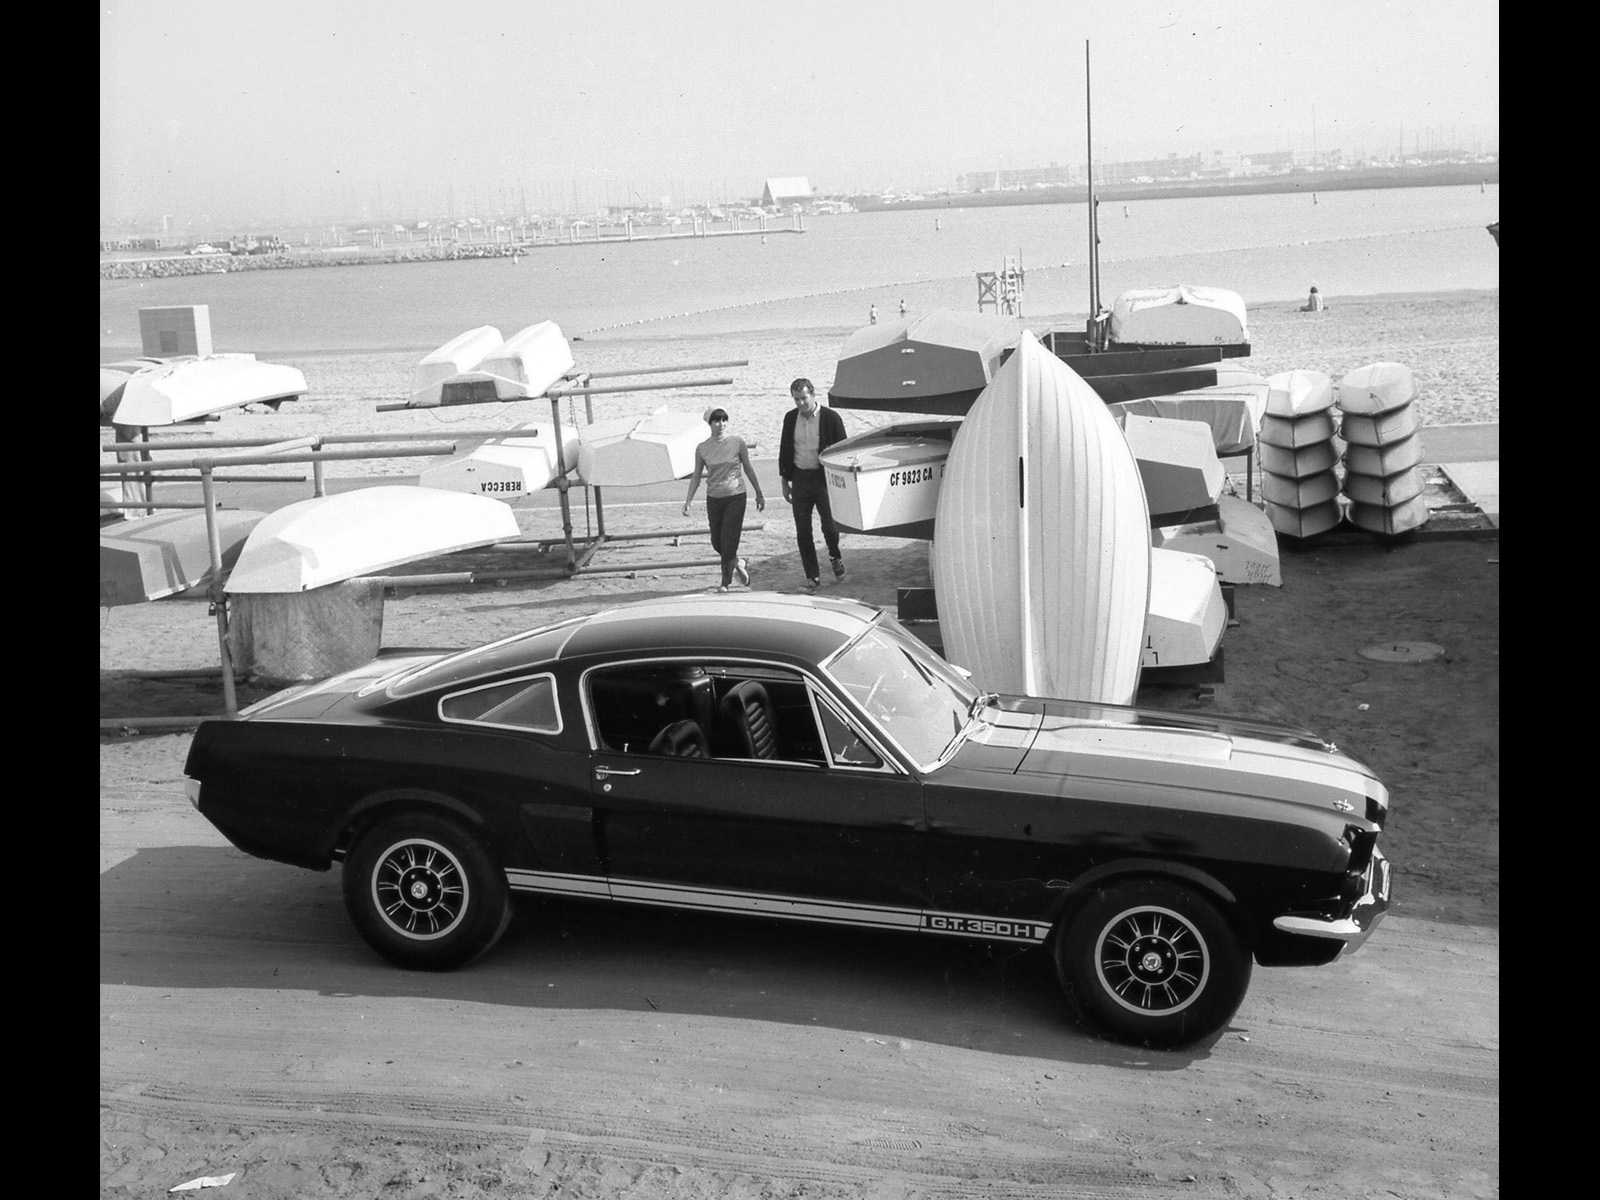 Ford Mustang Shelby photo 33579